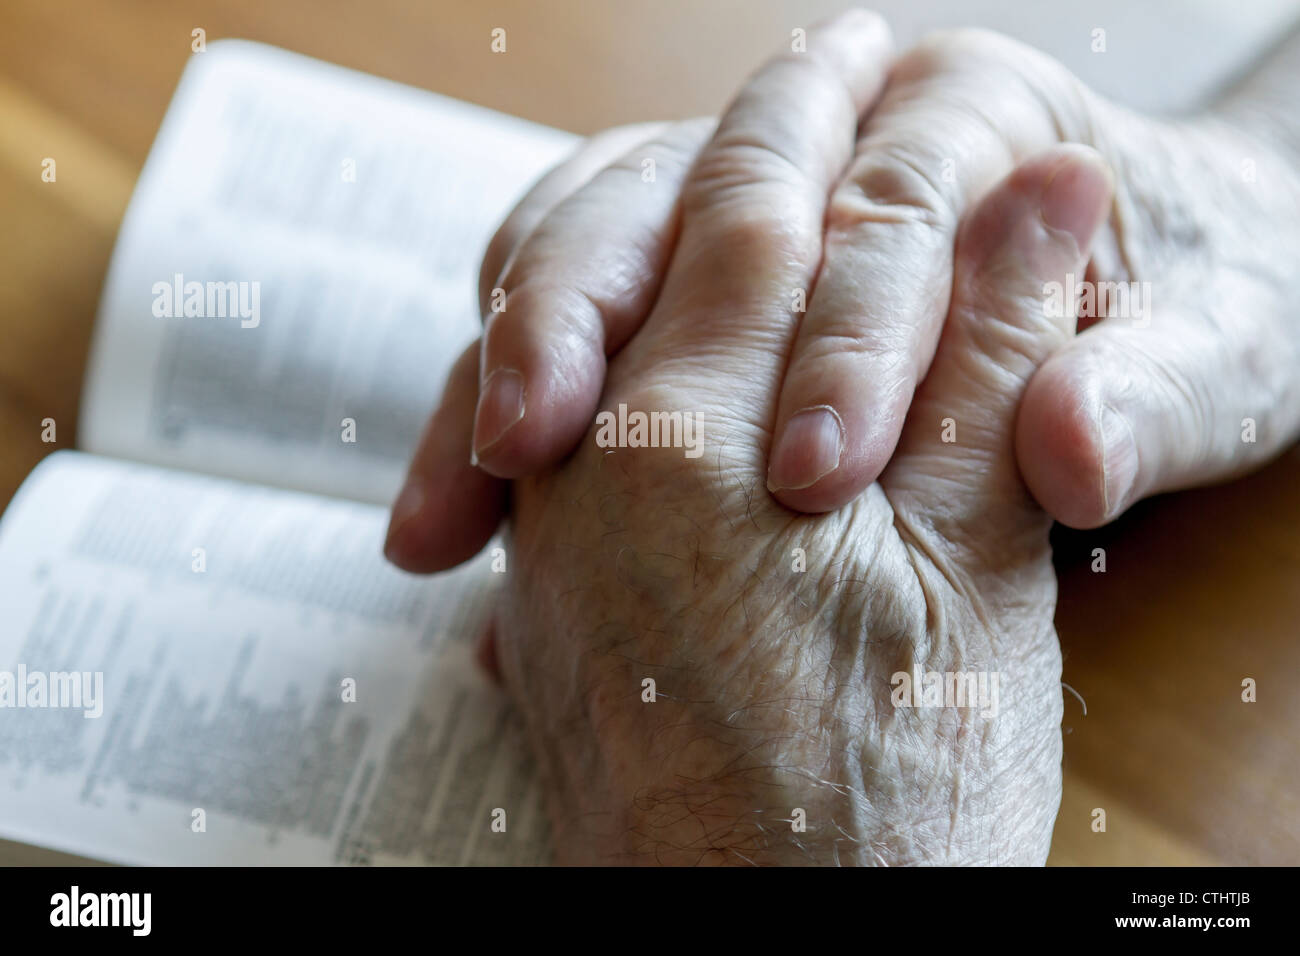 weathered old man's hands clasped in prayer over open Bible - Stock Image